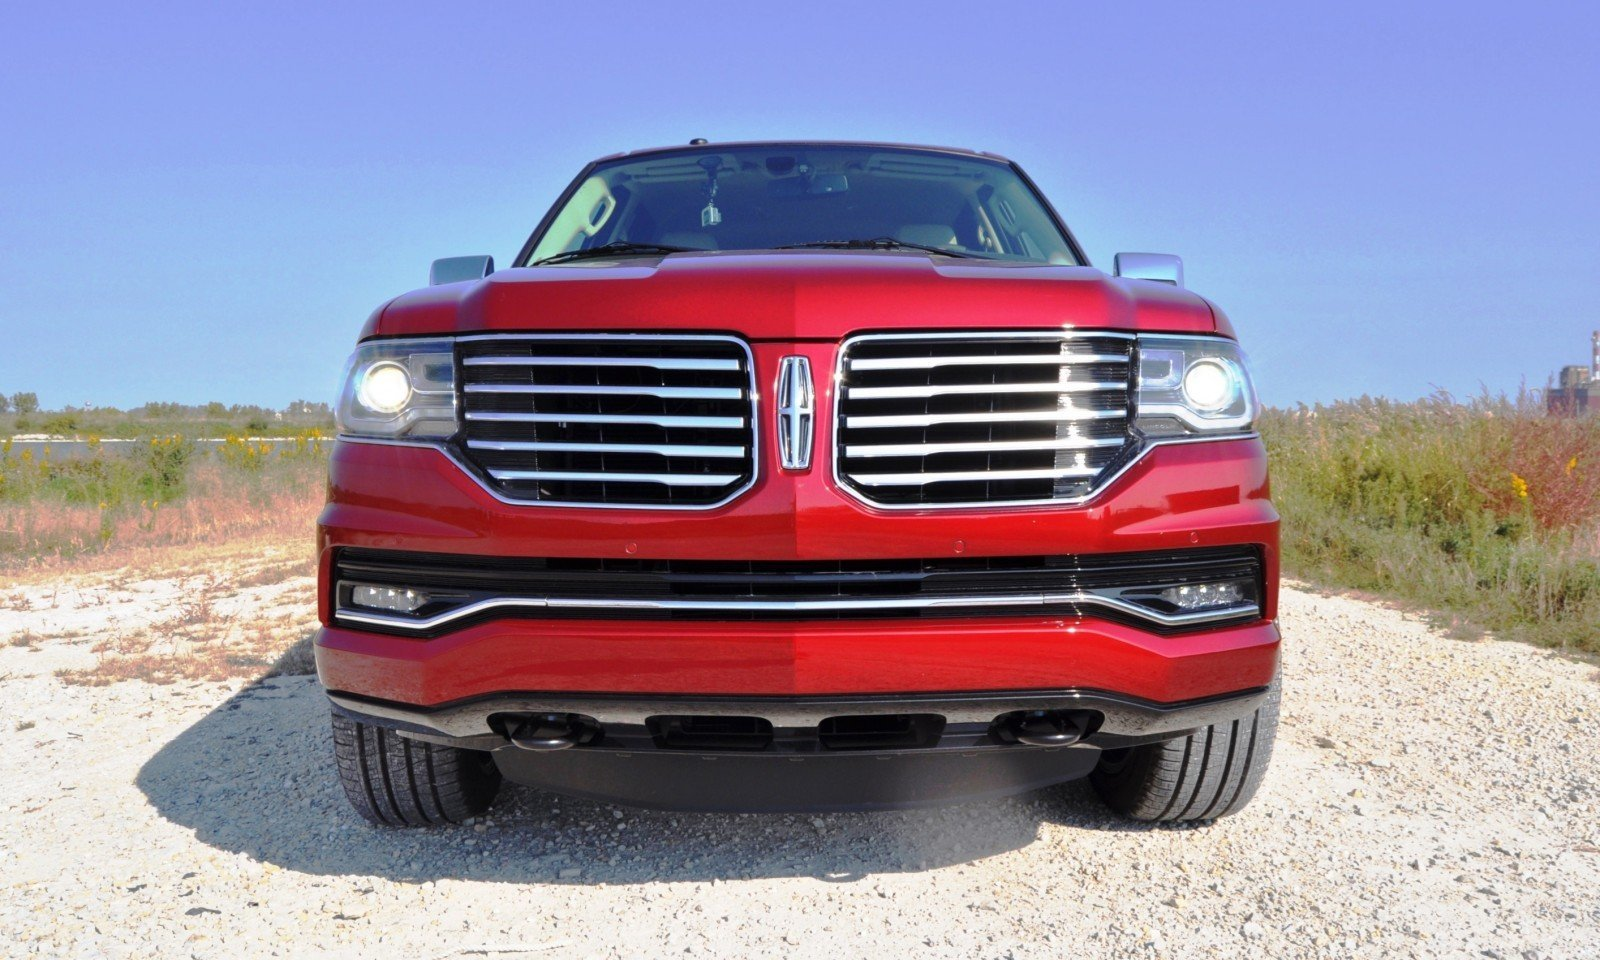 Road Test Review - 2015 Lincoln Navigator Is Totally Transformed By MR Shocks and EcoBoost 16